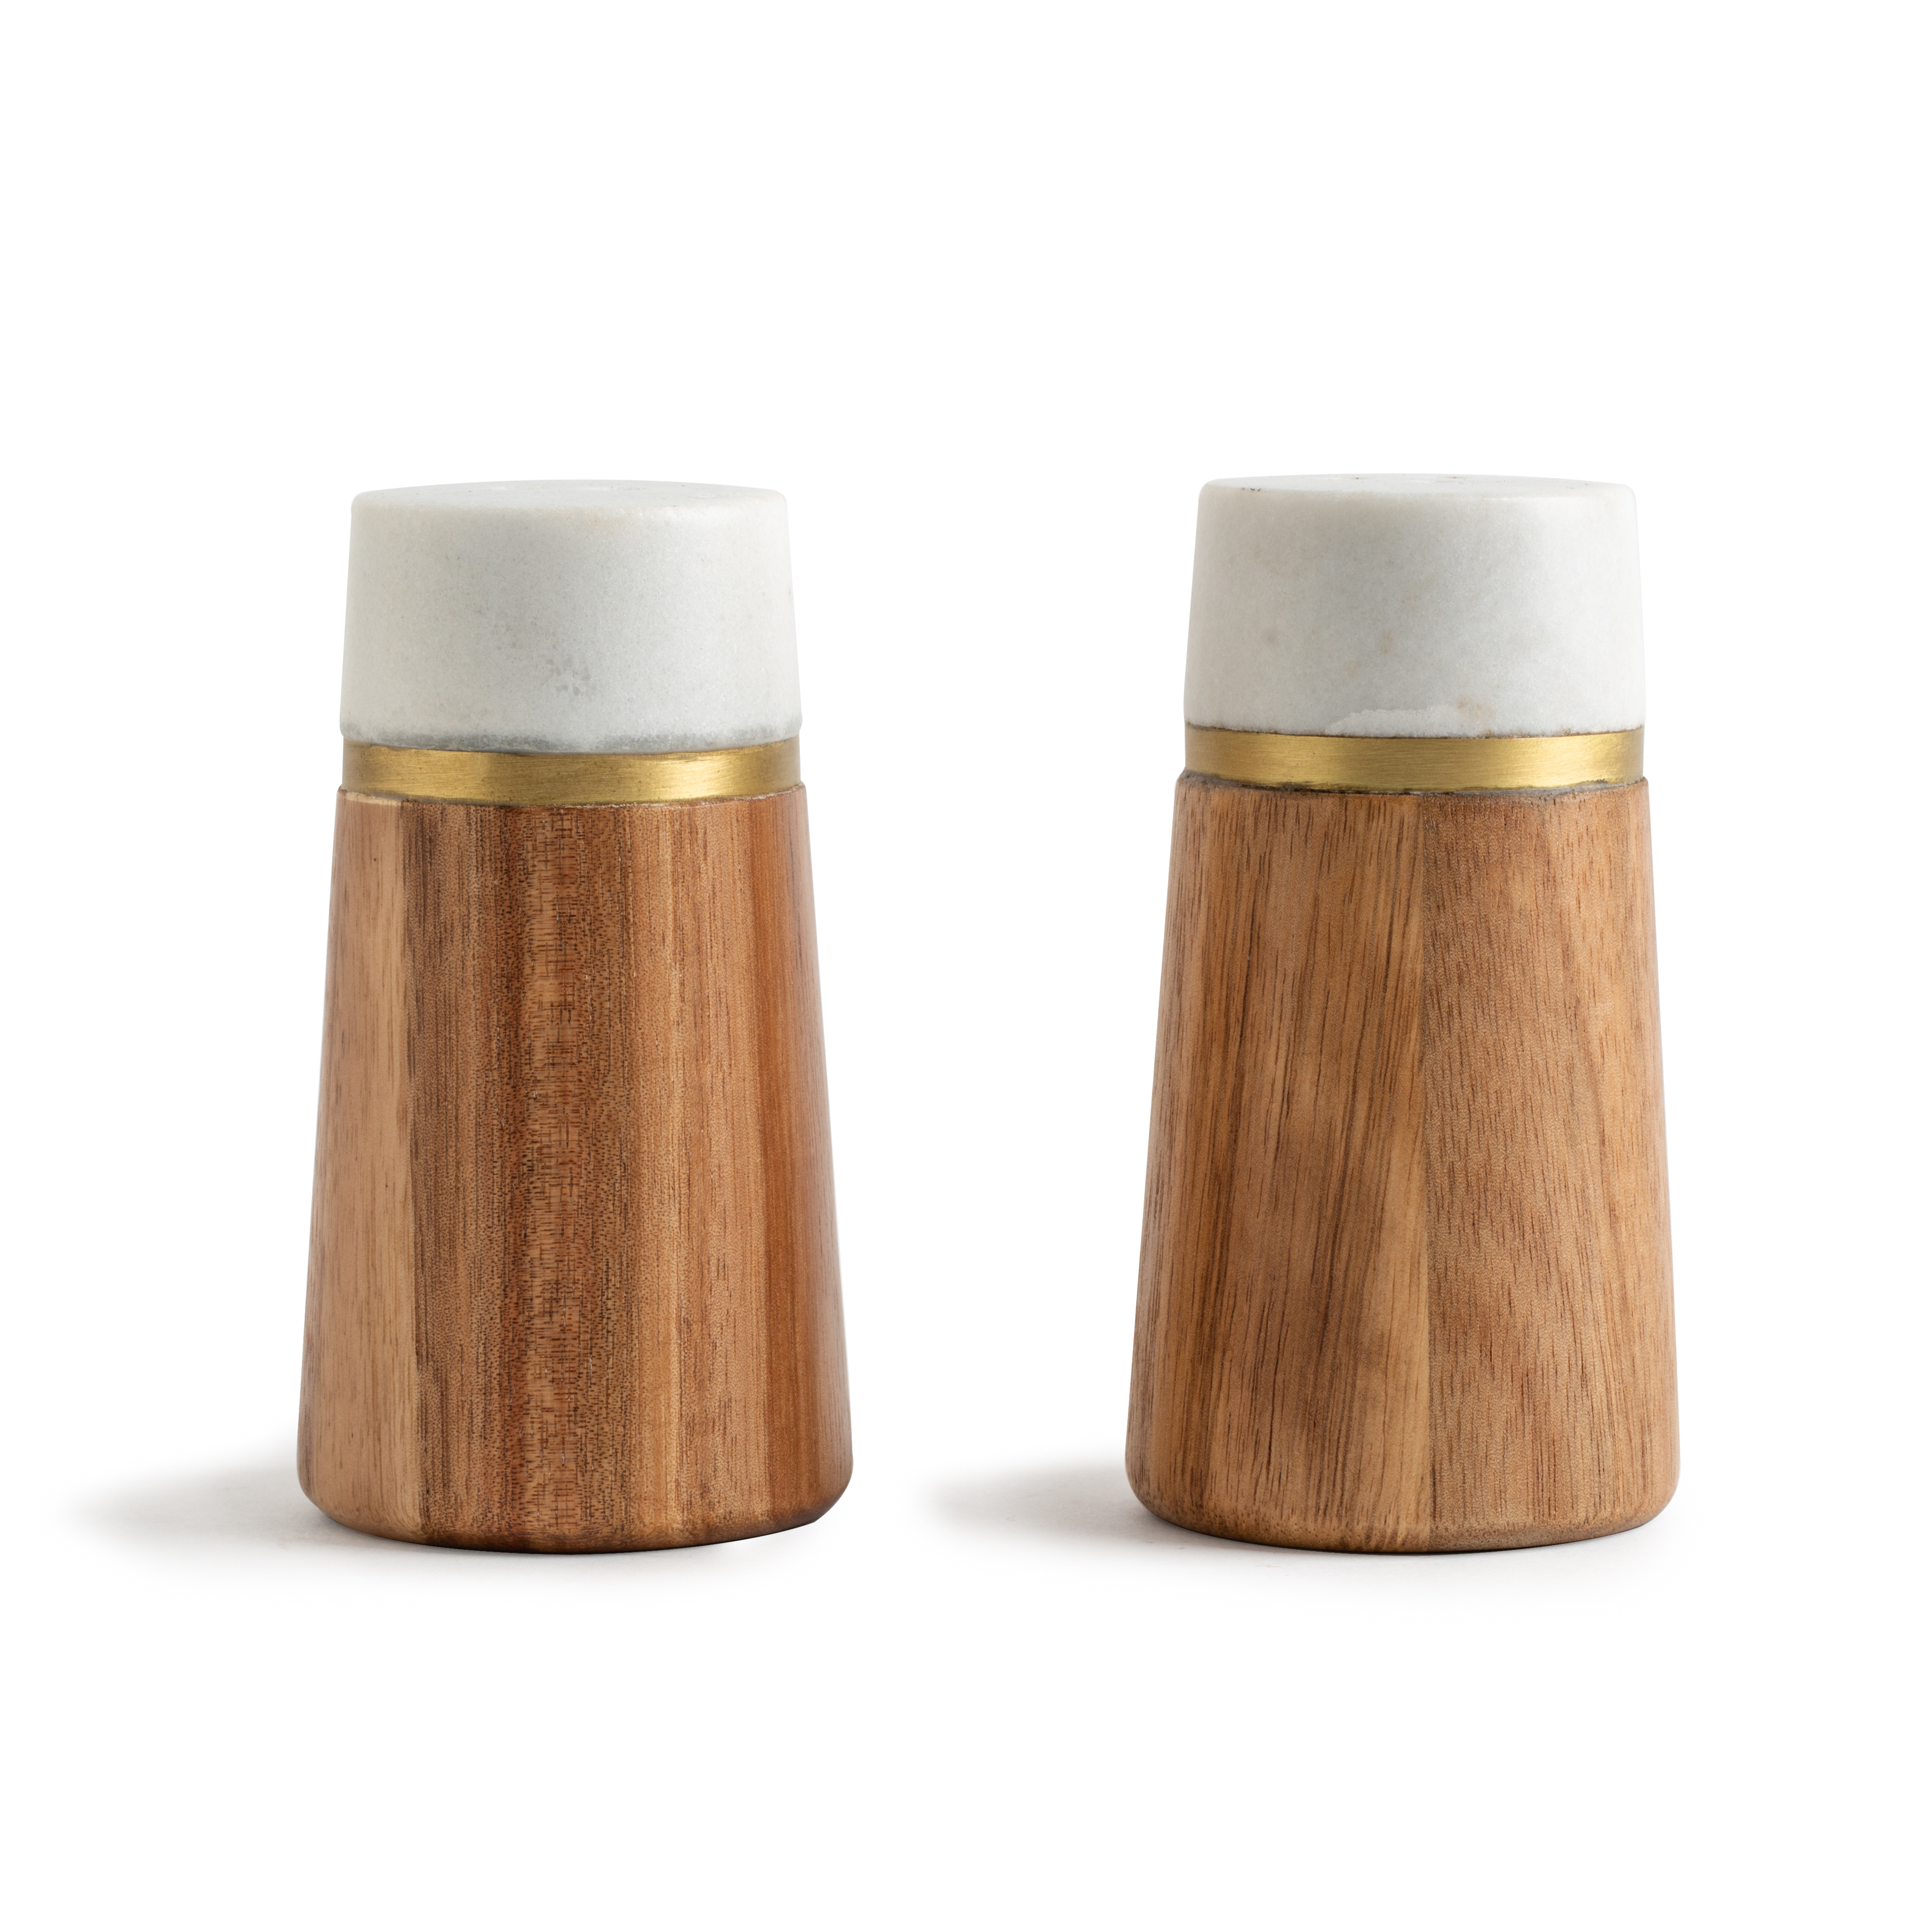 Better Homes & Gardens Salt and Pepper Set, Acacia Wood and Marble